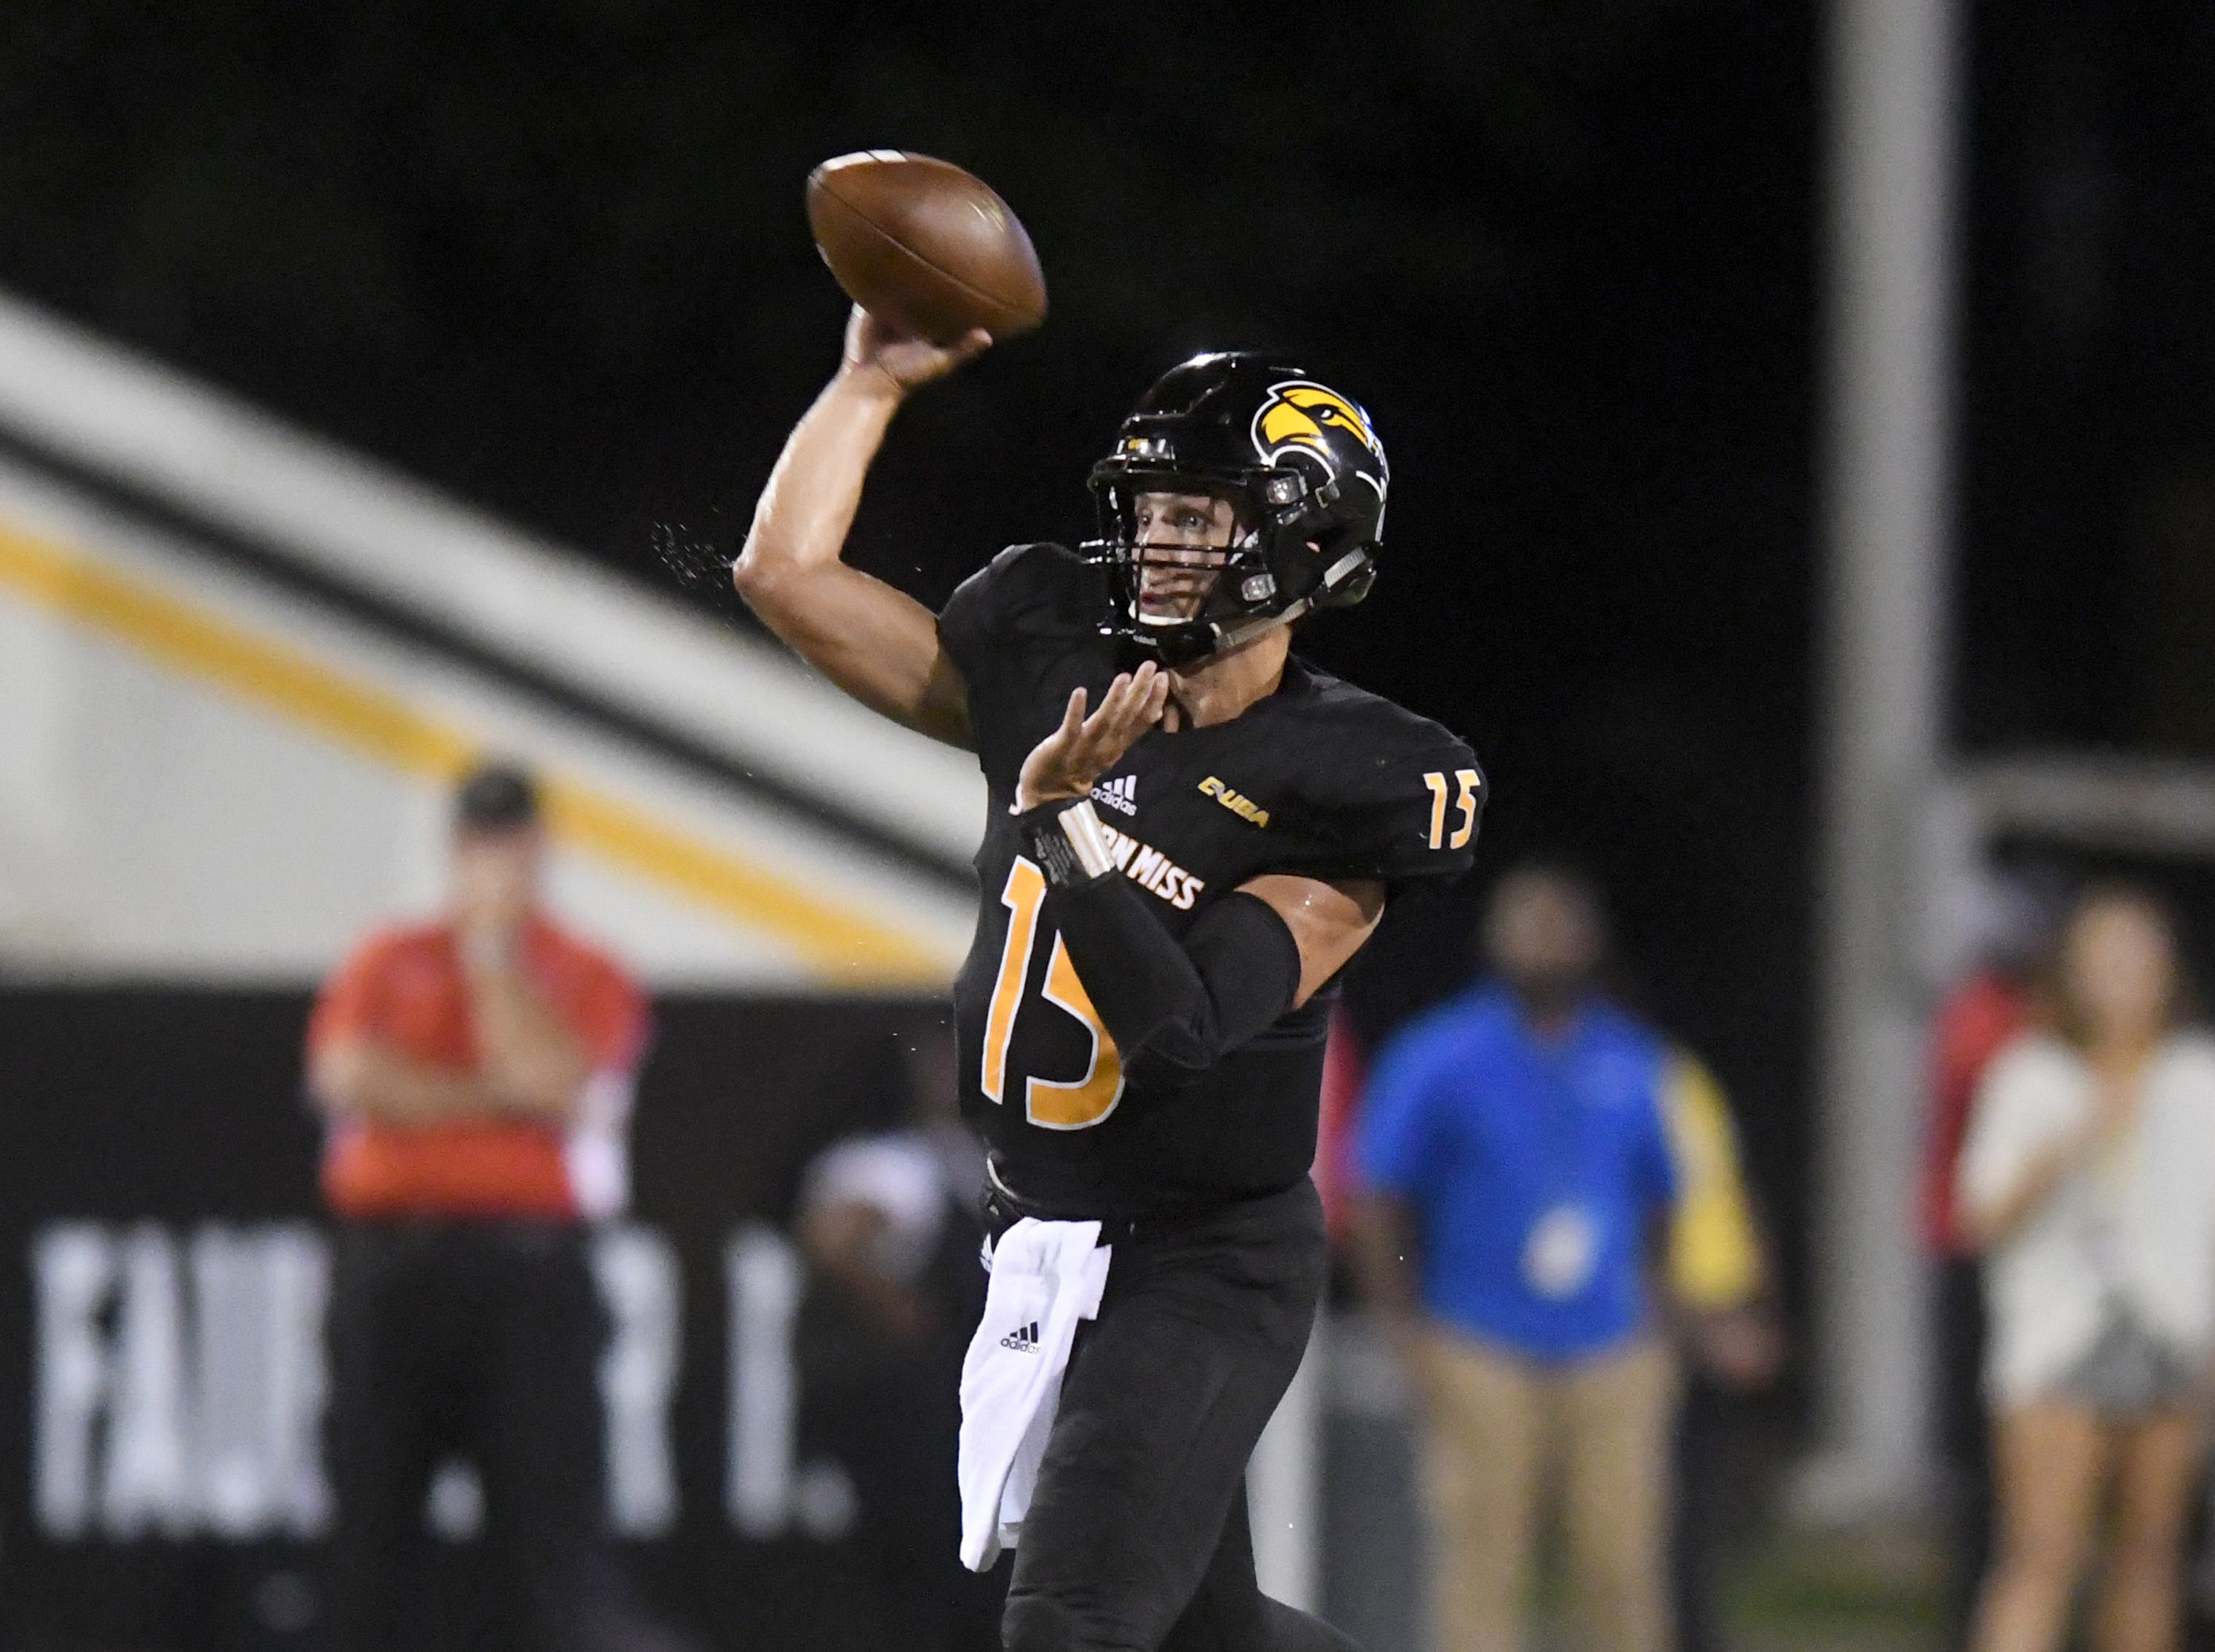 Southern Miss quarterback Jack Abraham throws the ball in a game against ULM in M.M. Roberts Stadium on Saturday, September 8, 2018.